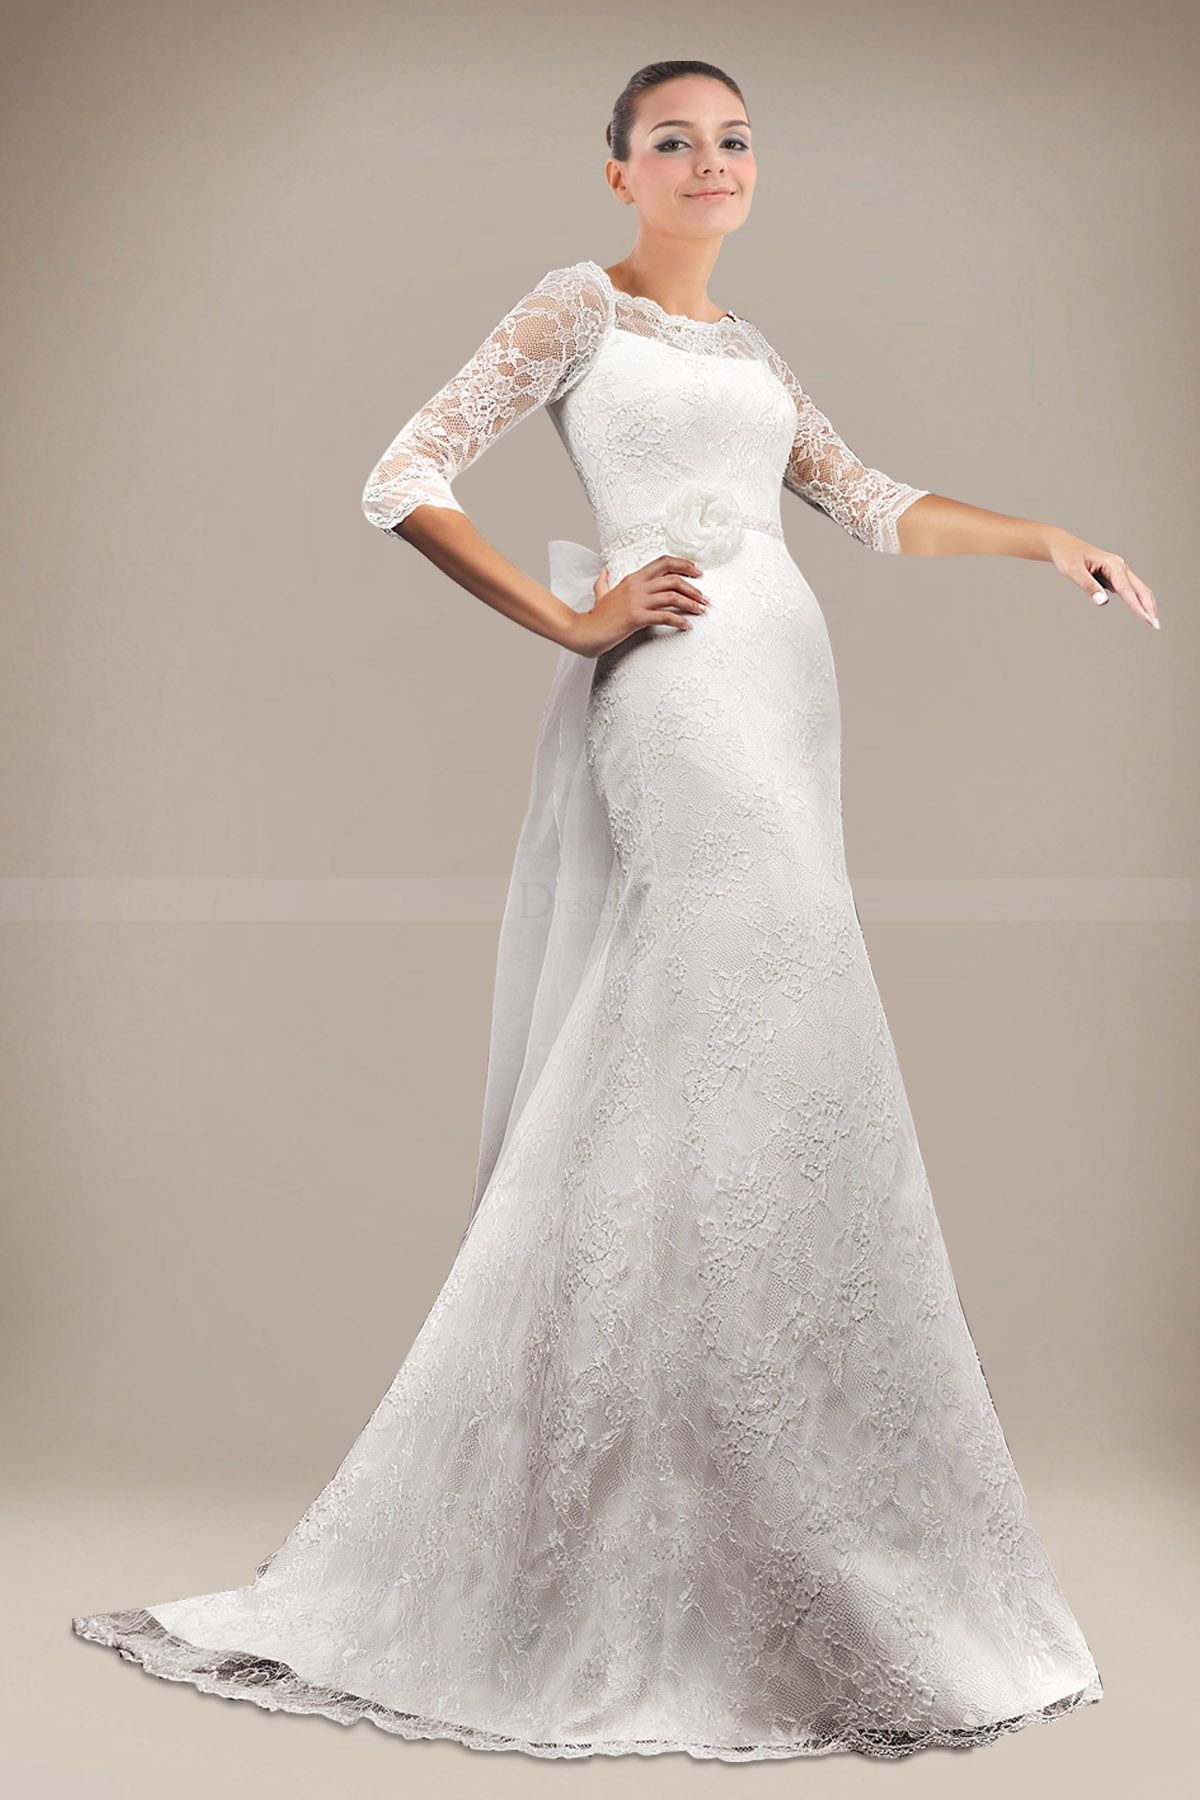 Outstanding Sheath Wedding Dress Holding Floral in Luxury